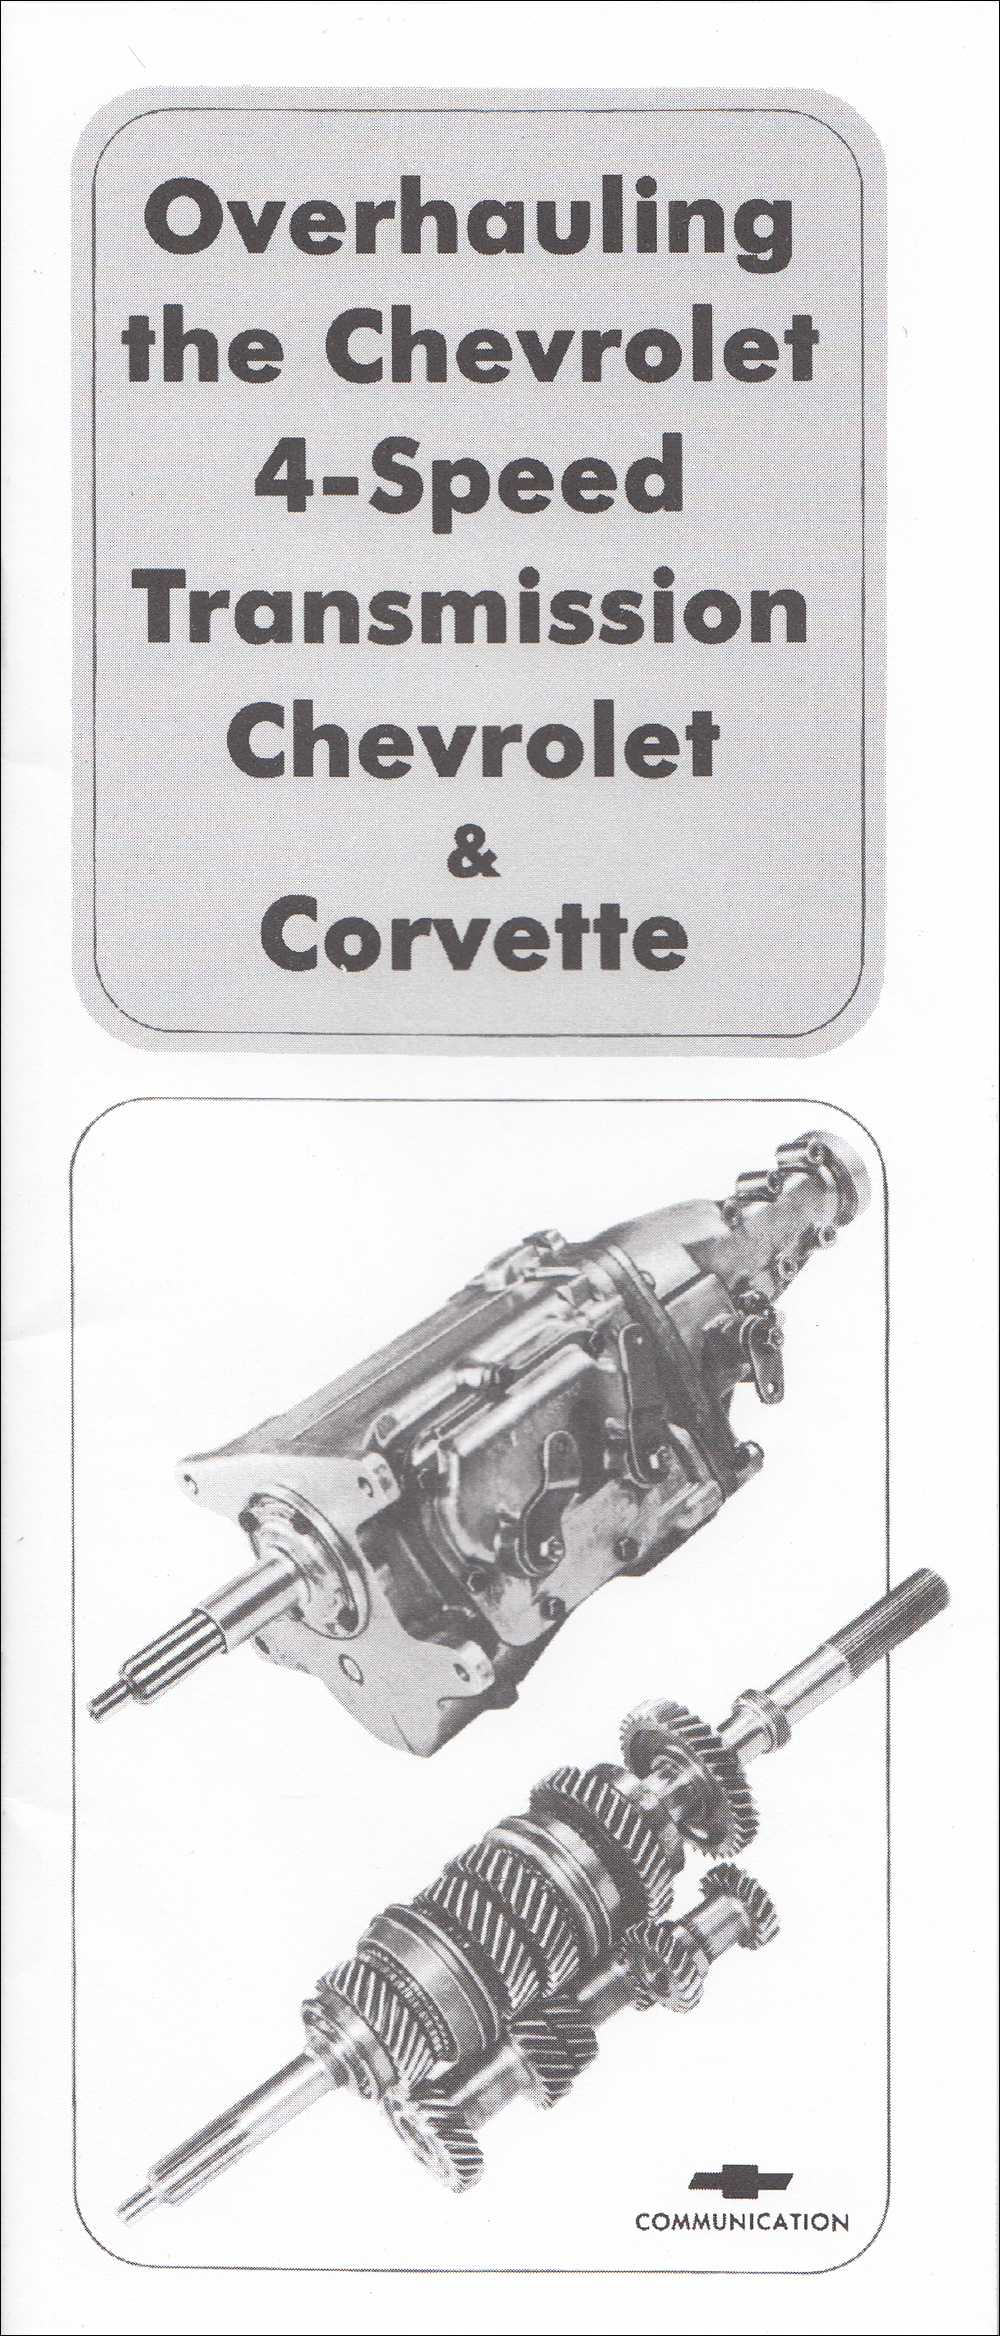 1963-1965 Chevrolet 4 Speed Manual Transmission Overhaul Manual Reprint Muncie M20 21